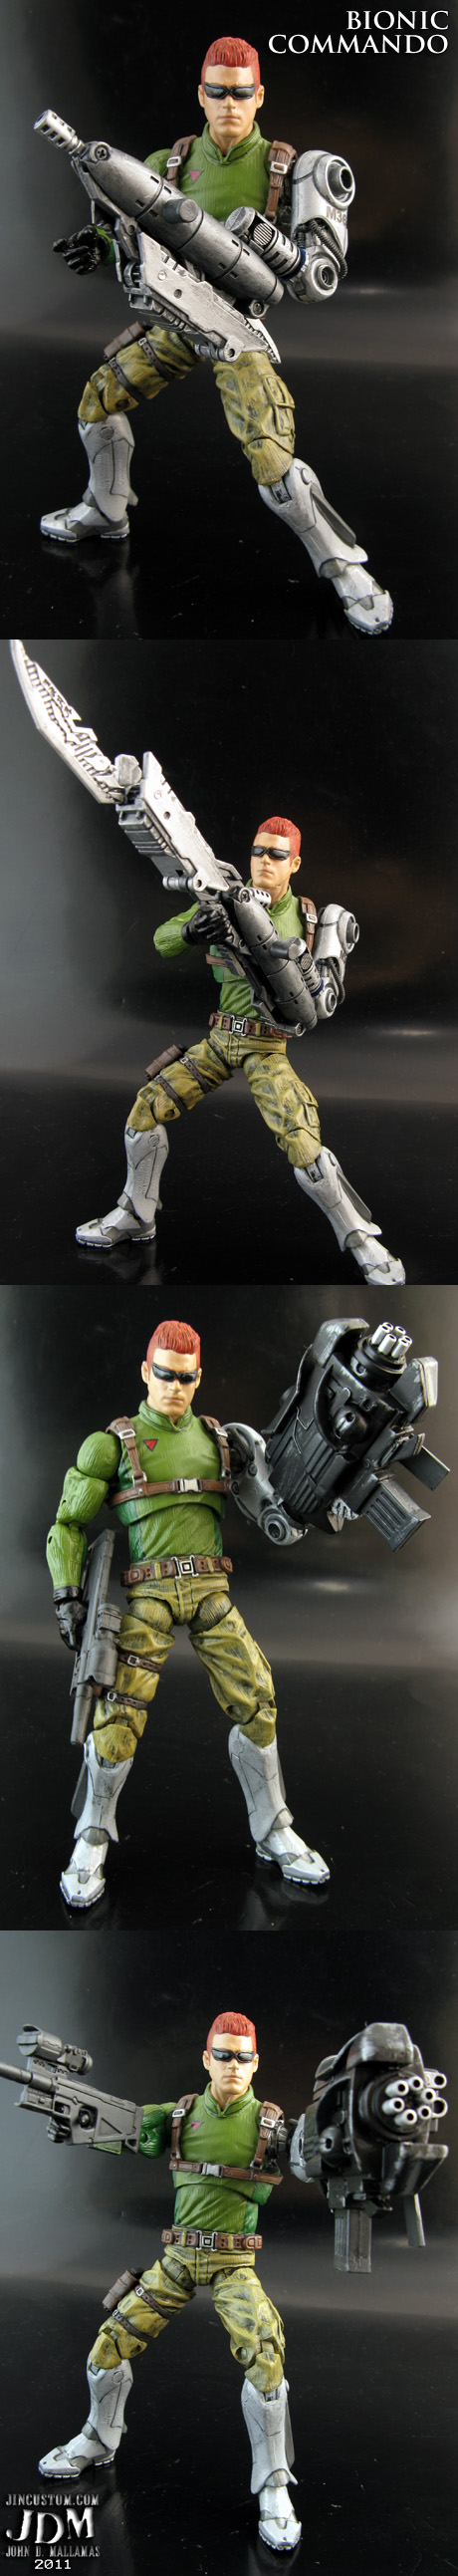 Custom Bionic Commando